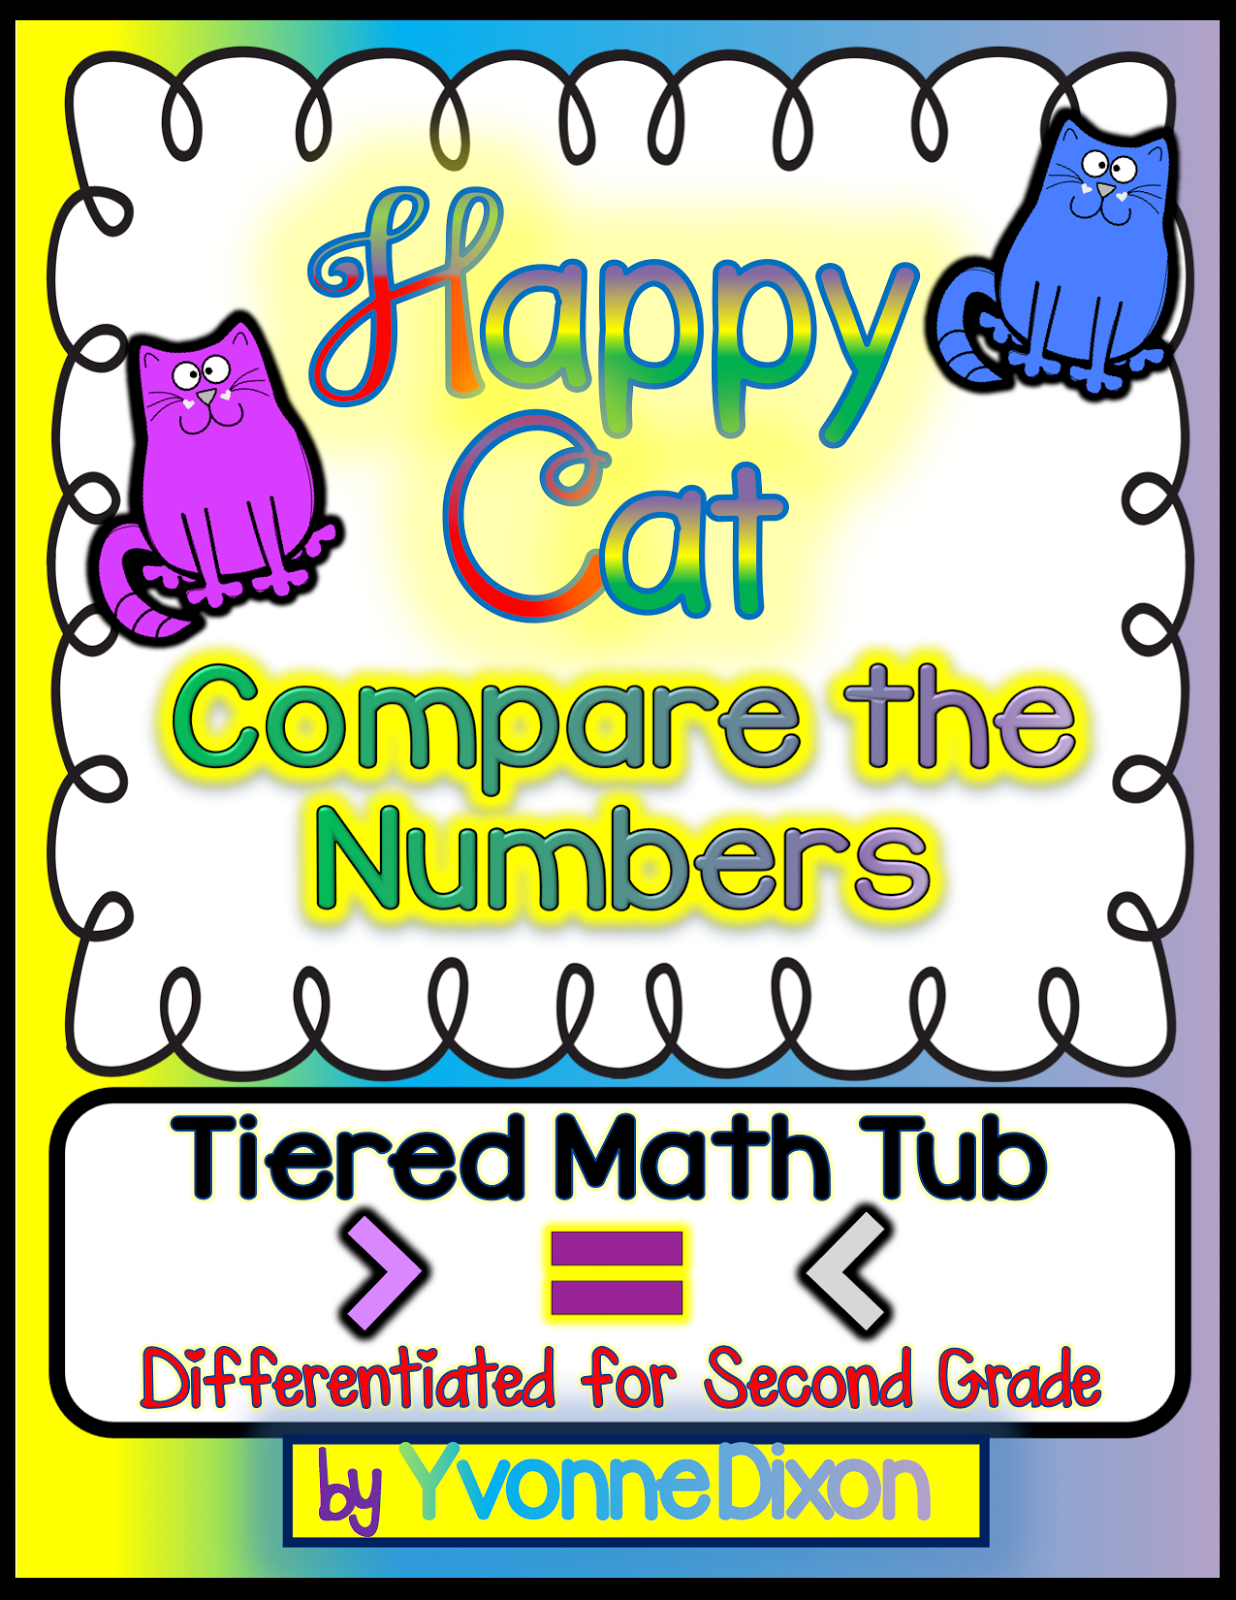 NEW!  By request...MORE MATH TUBS!